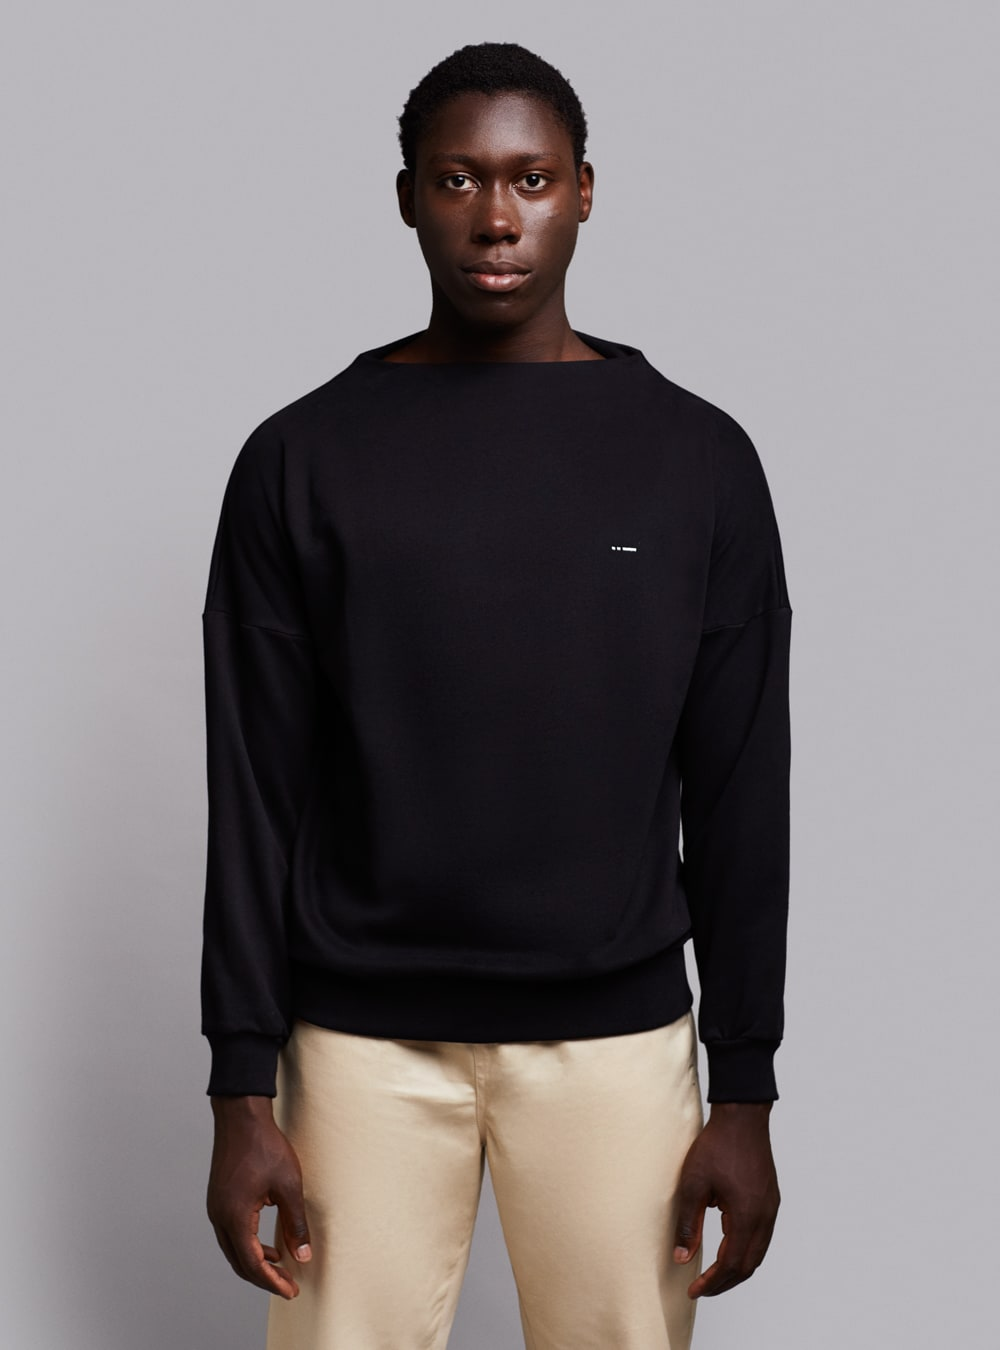 Deconstructed sweatshirt (black) in organic cotton, made in Portugal by wetheknot.